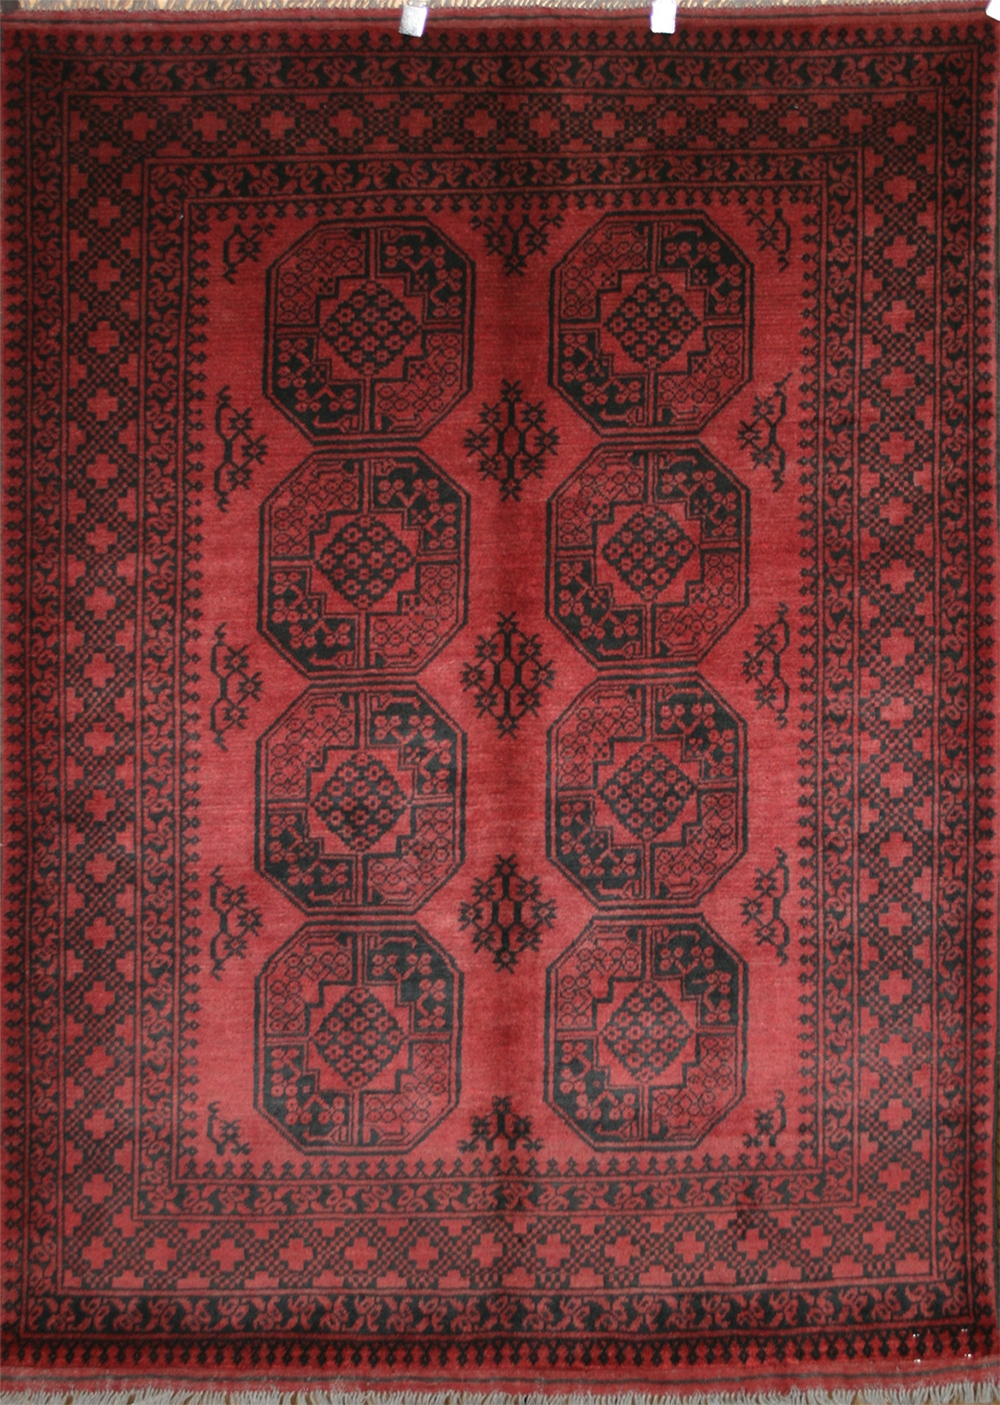 Afghan Red Rugs Aqcha Rugs Origin And Description Guide Within Afghan Rug Types (Image 4 of 15)